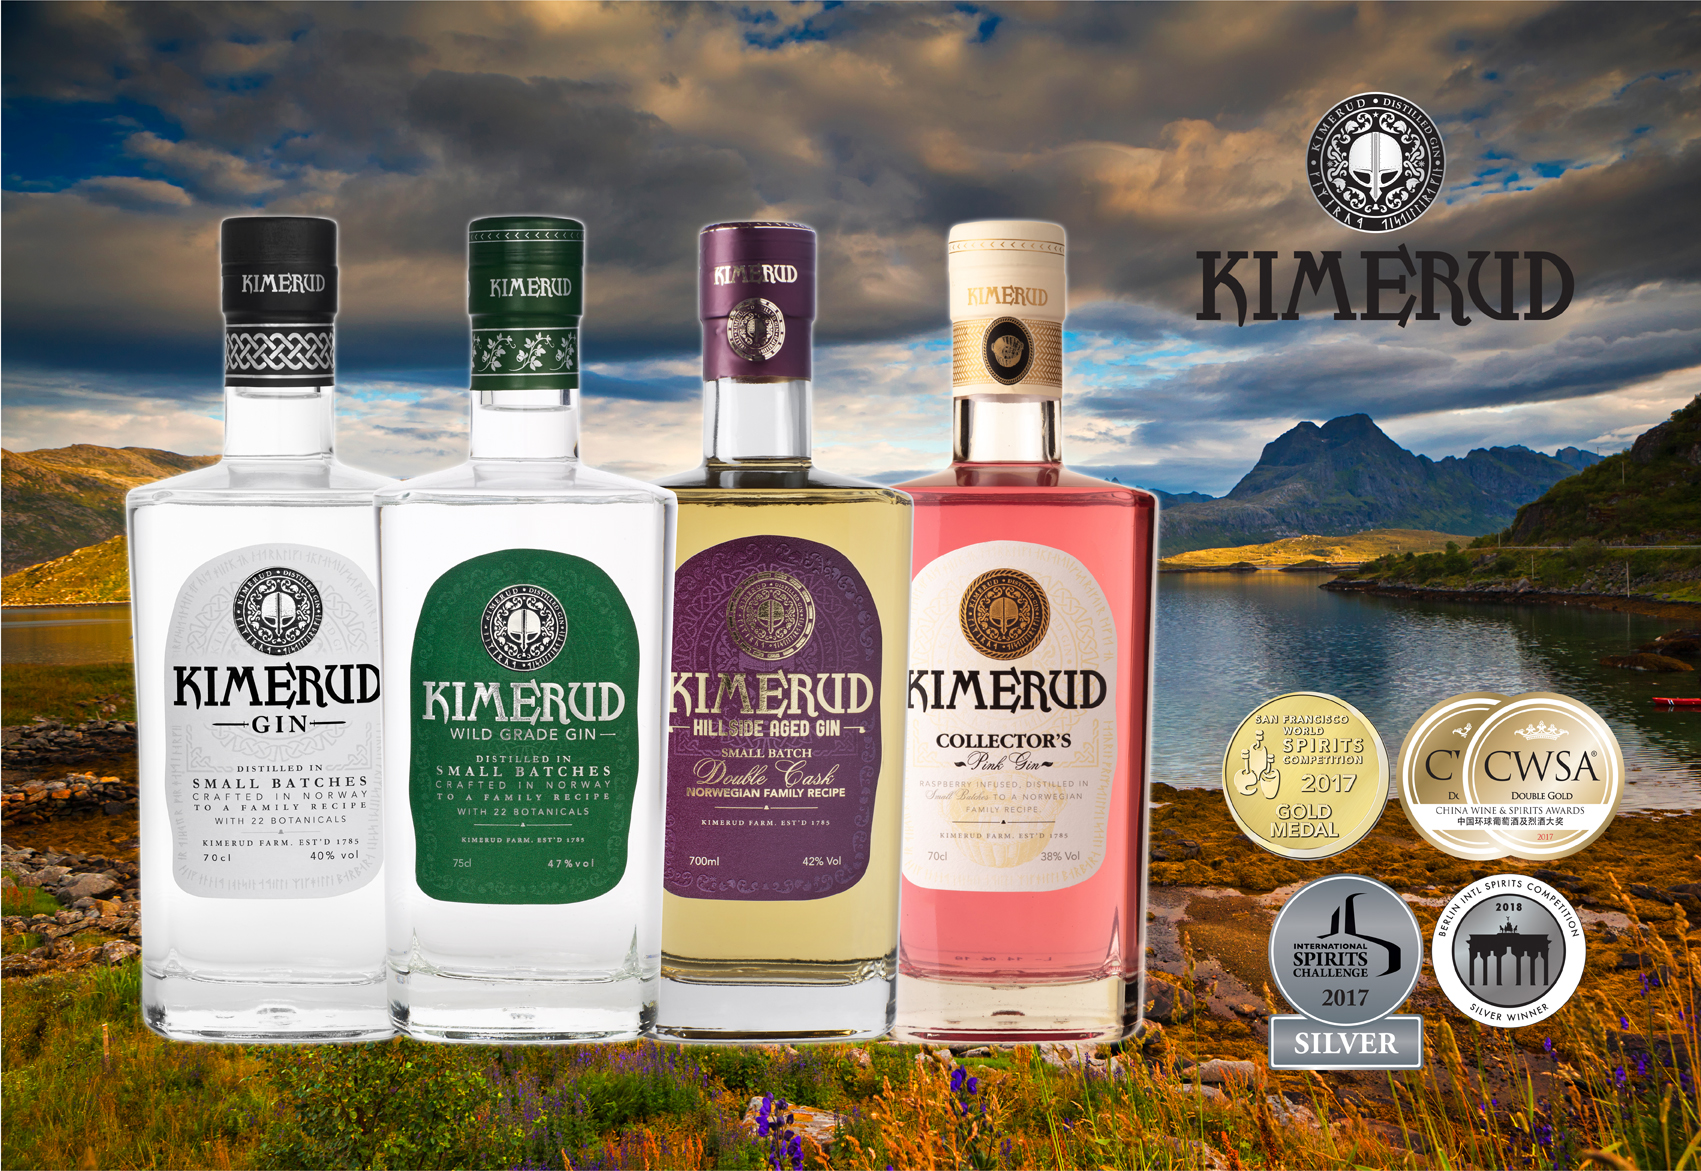 Kimerud Gin from Norway